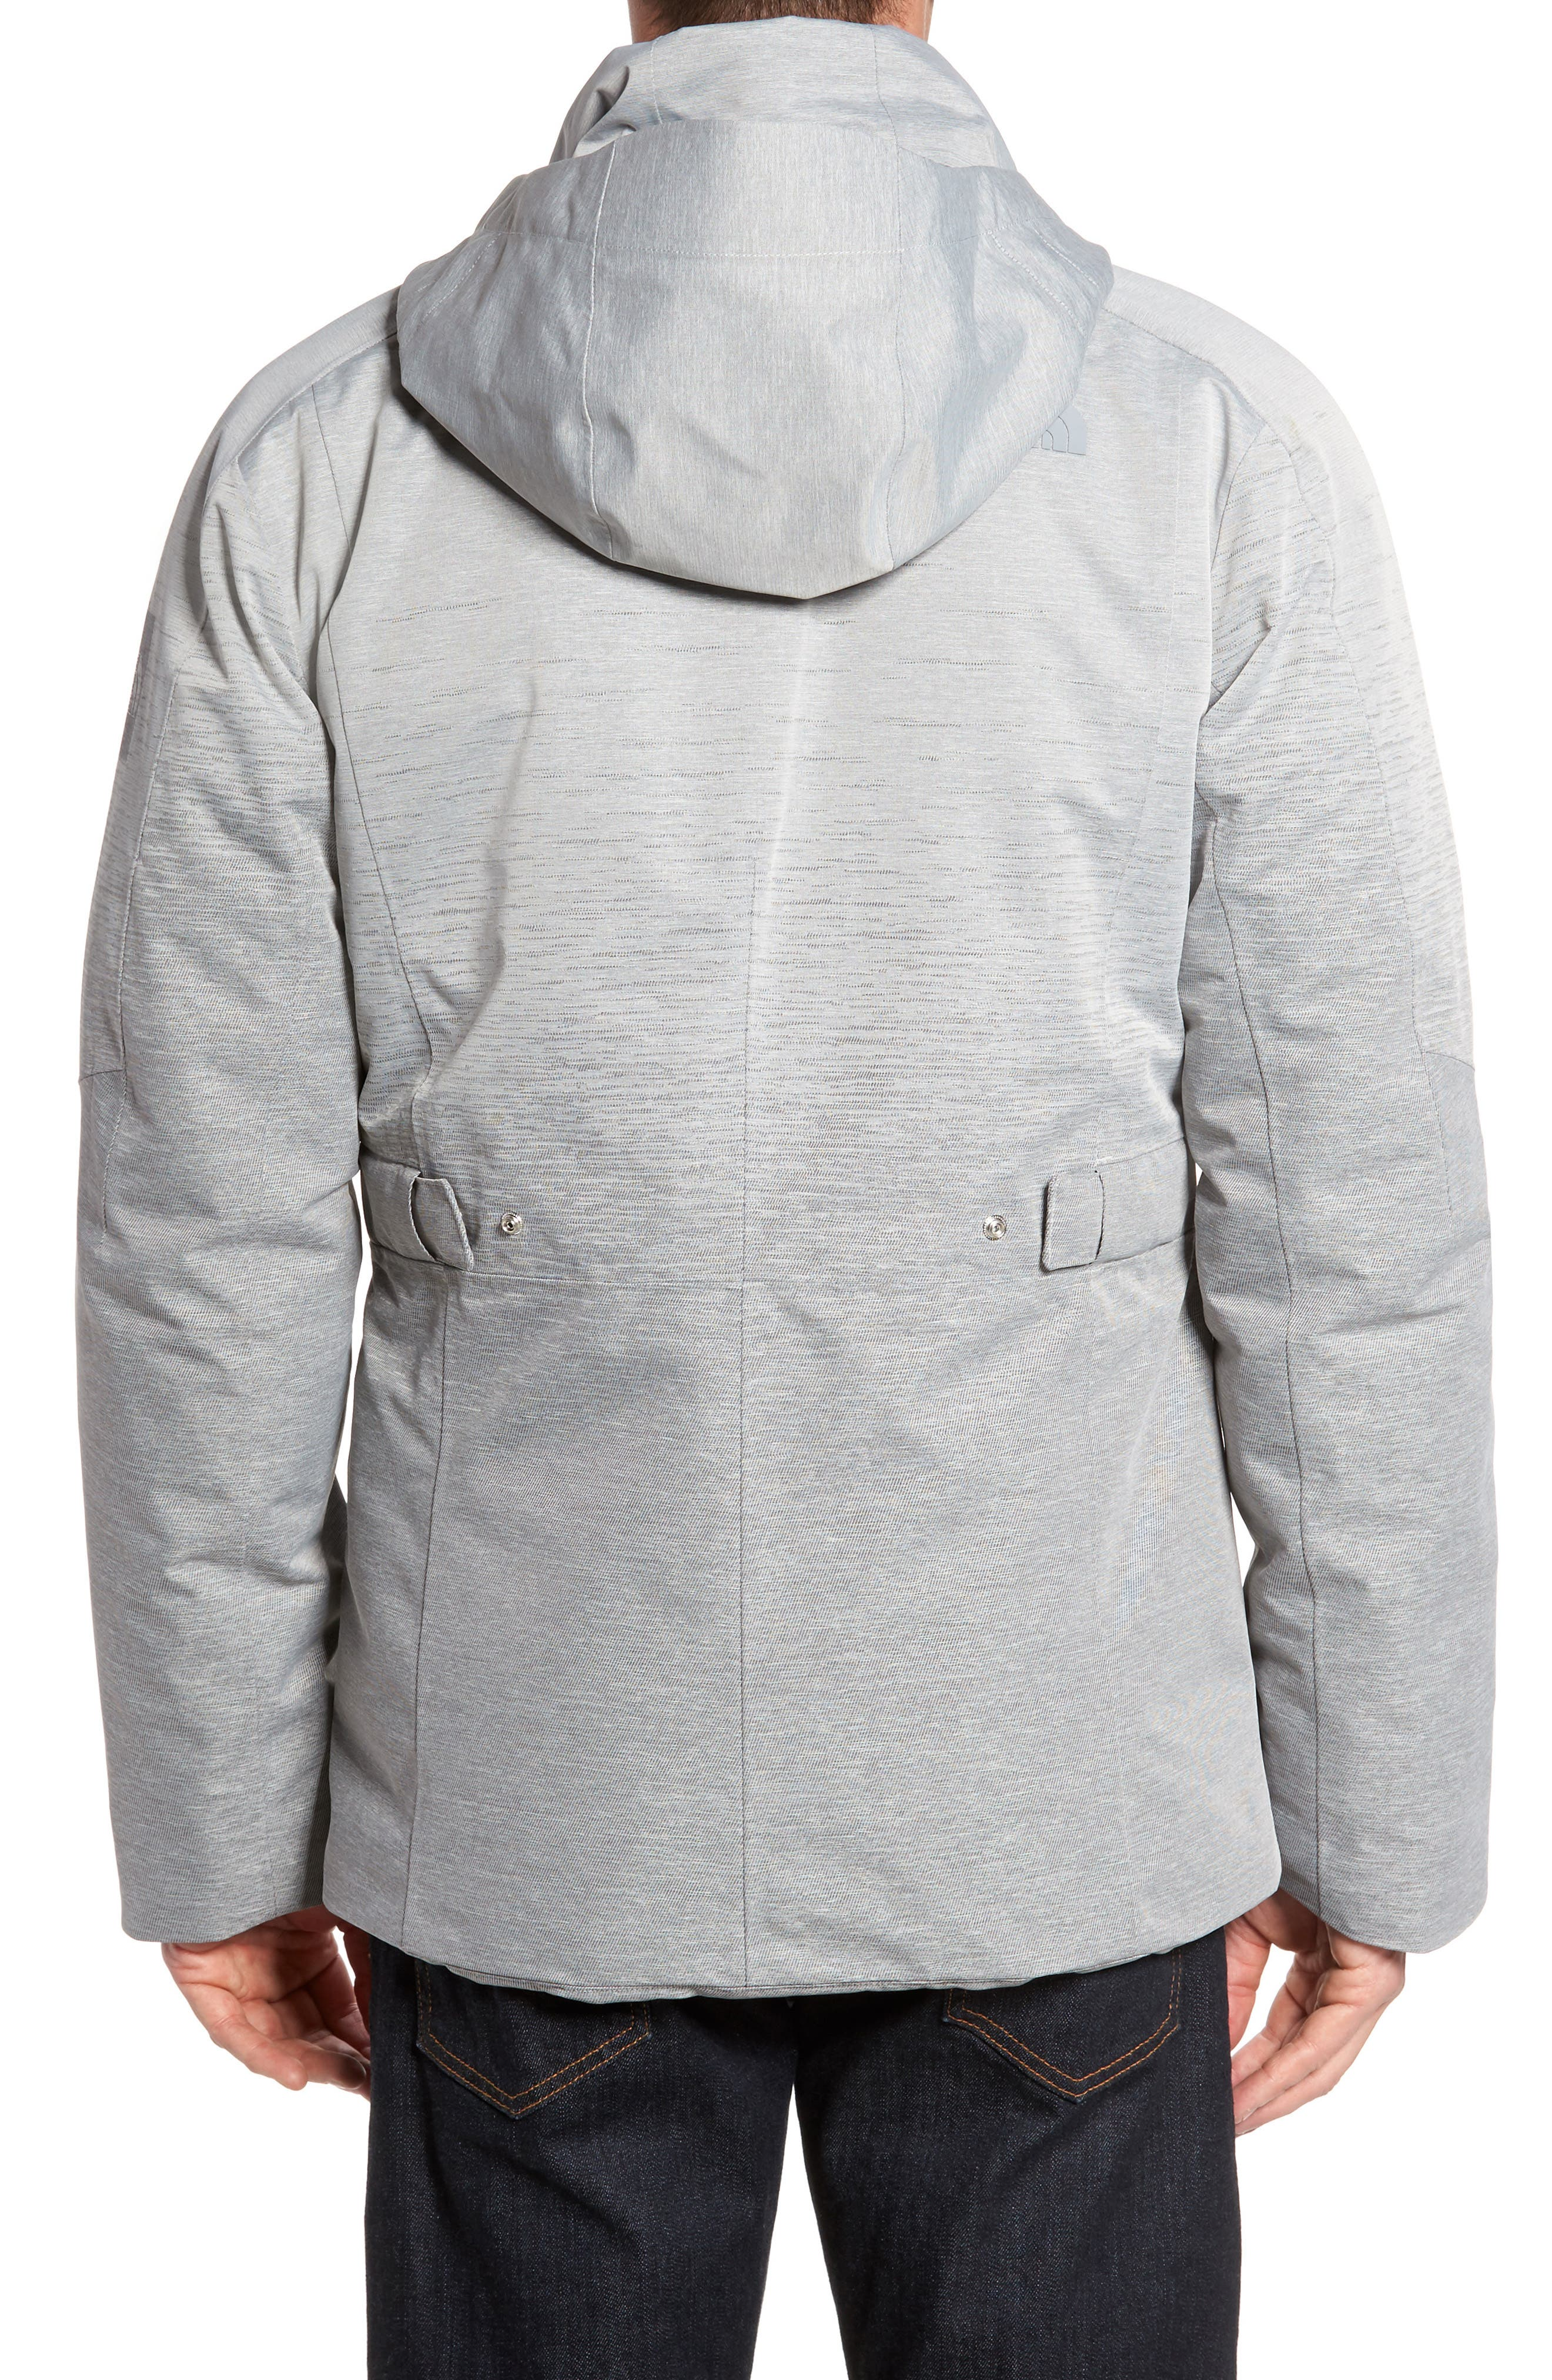 THE NORTH FACE,                             Cryos Gore-Tex<sup>®</sup> Jacket,                             Alternate thumbnail 2, color,                             030